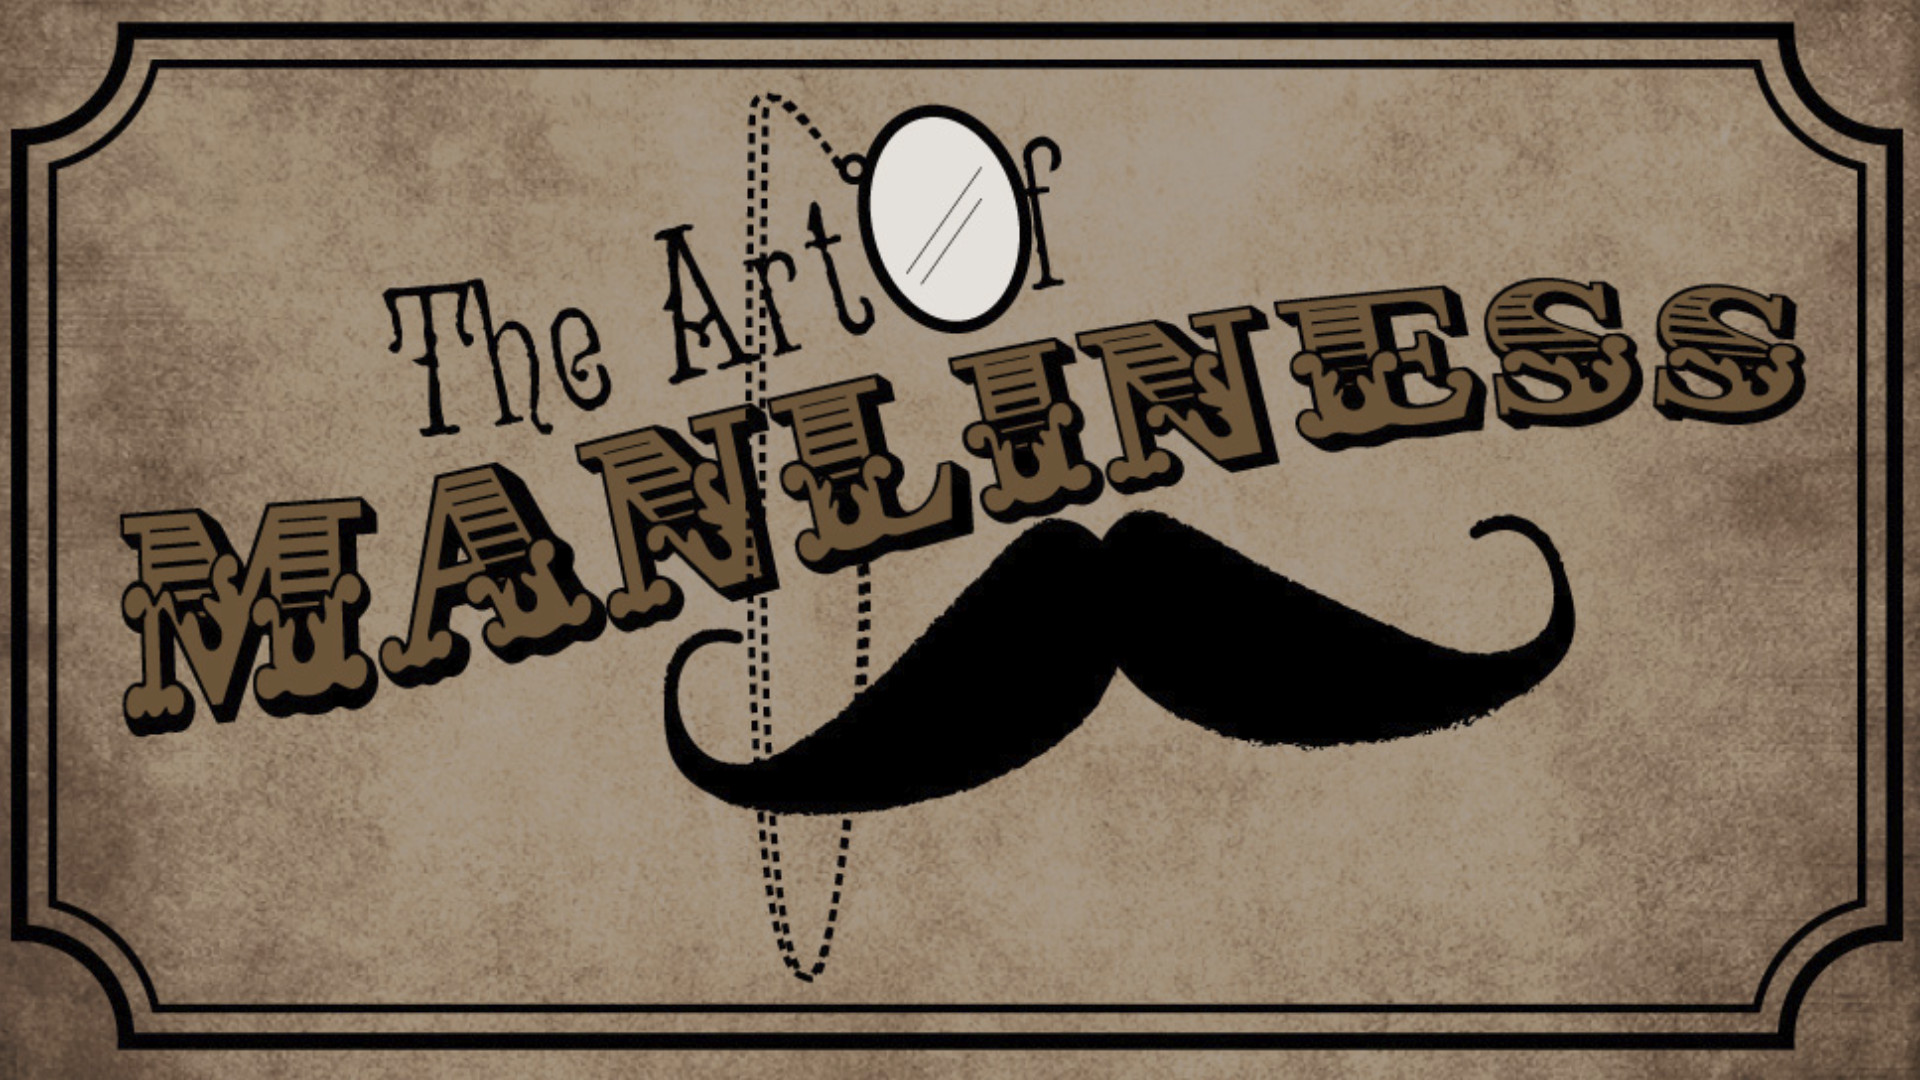 'The Art of Manliness': diez años formando caballeros